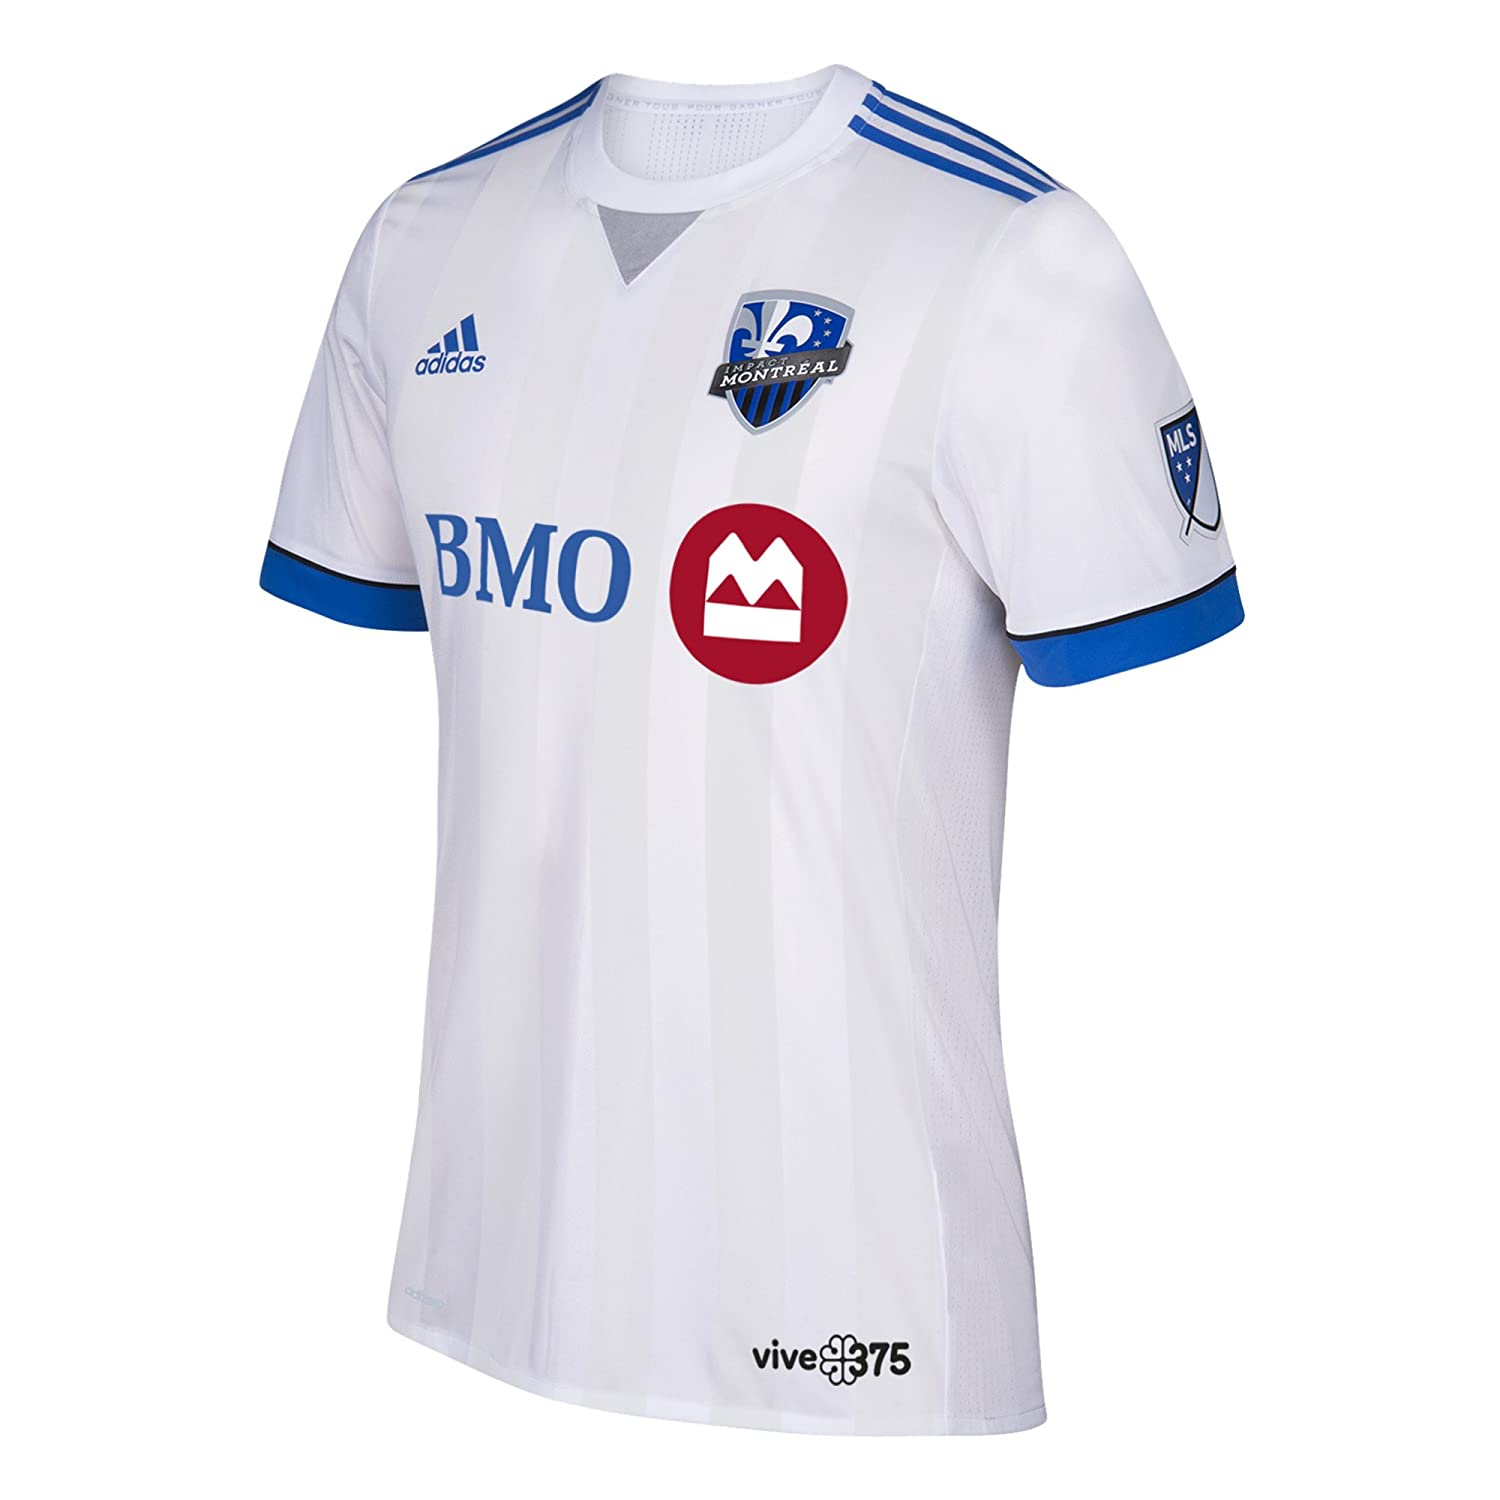 separation shoes 88dfd 69e18 adidas Men's MLS Montreal Impact Authentic Away Jersey ...